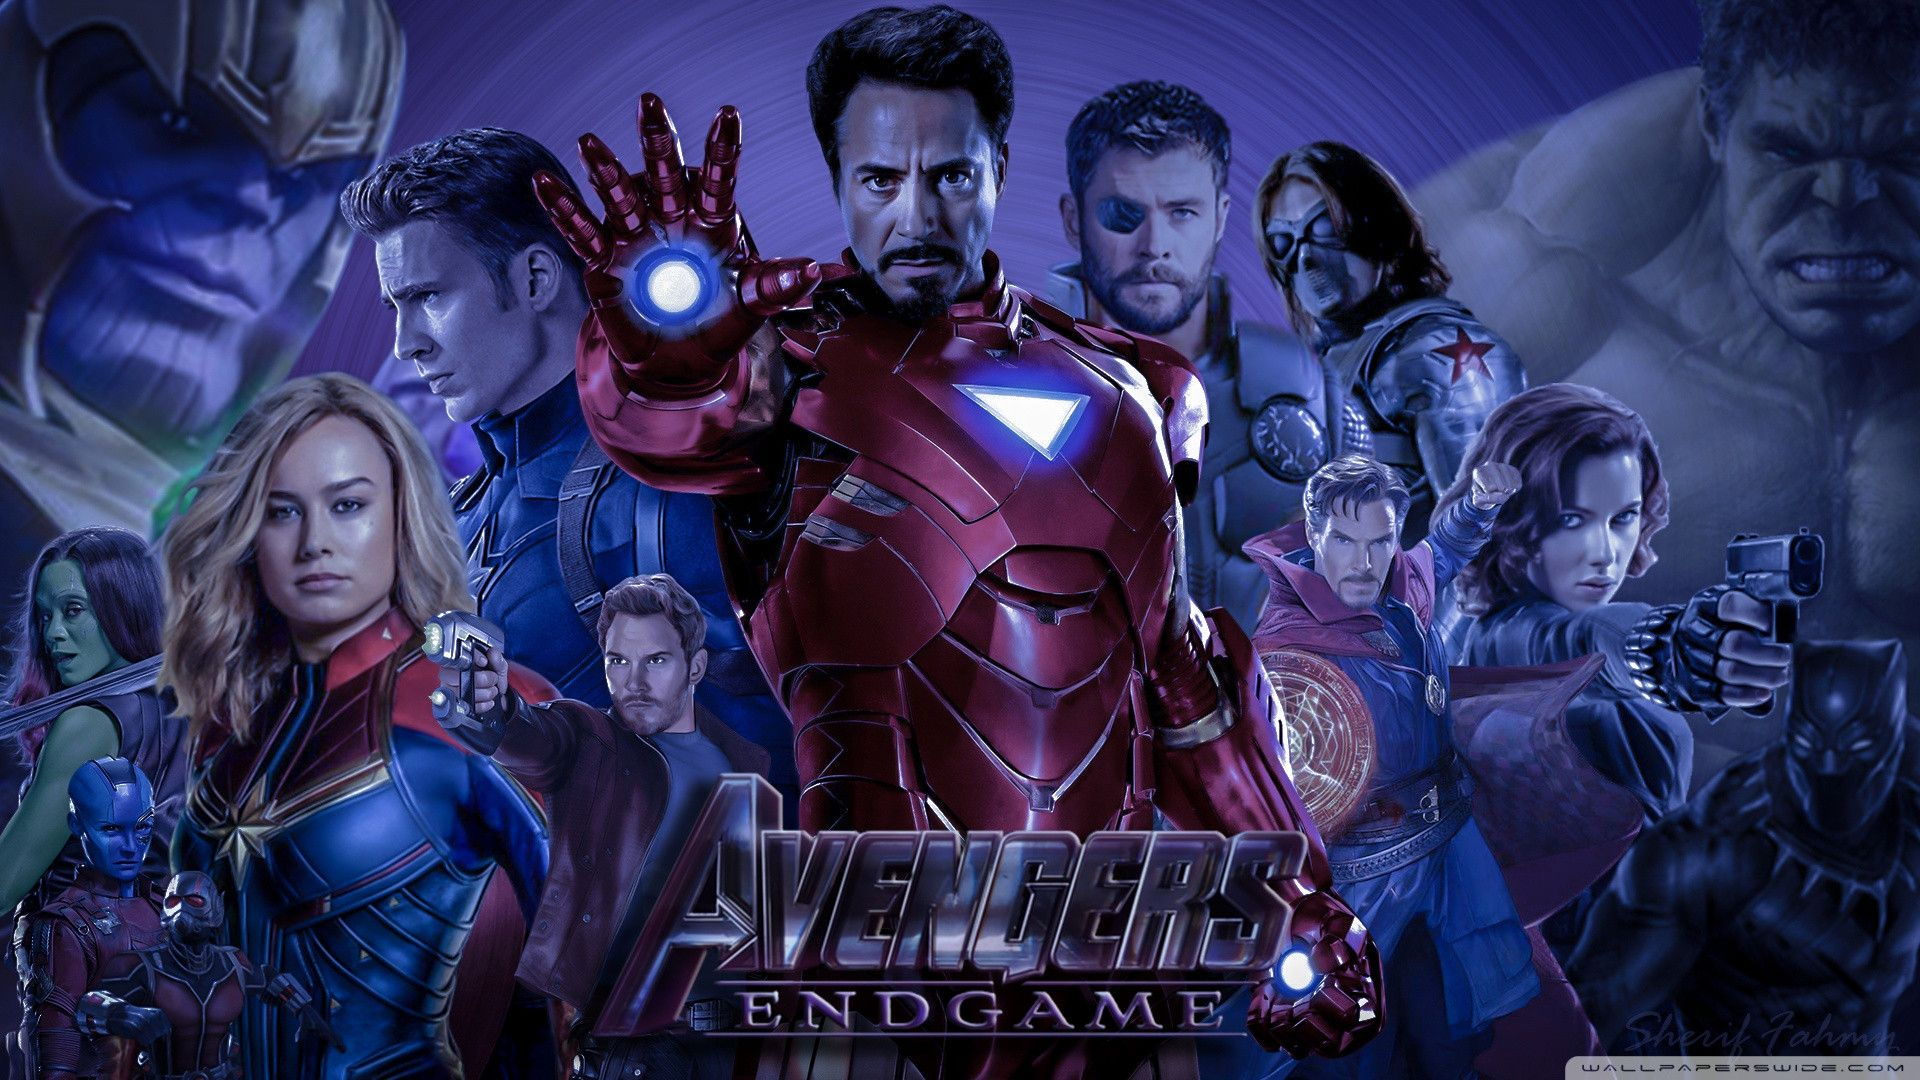 Awesome Avengers Endgame 4k Hd Desktop Wallpaper For 4k Ultra Hd Tv Desktop Wallpaper 4k Ultra Hd Tvs Hd Desktop